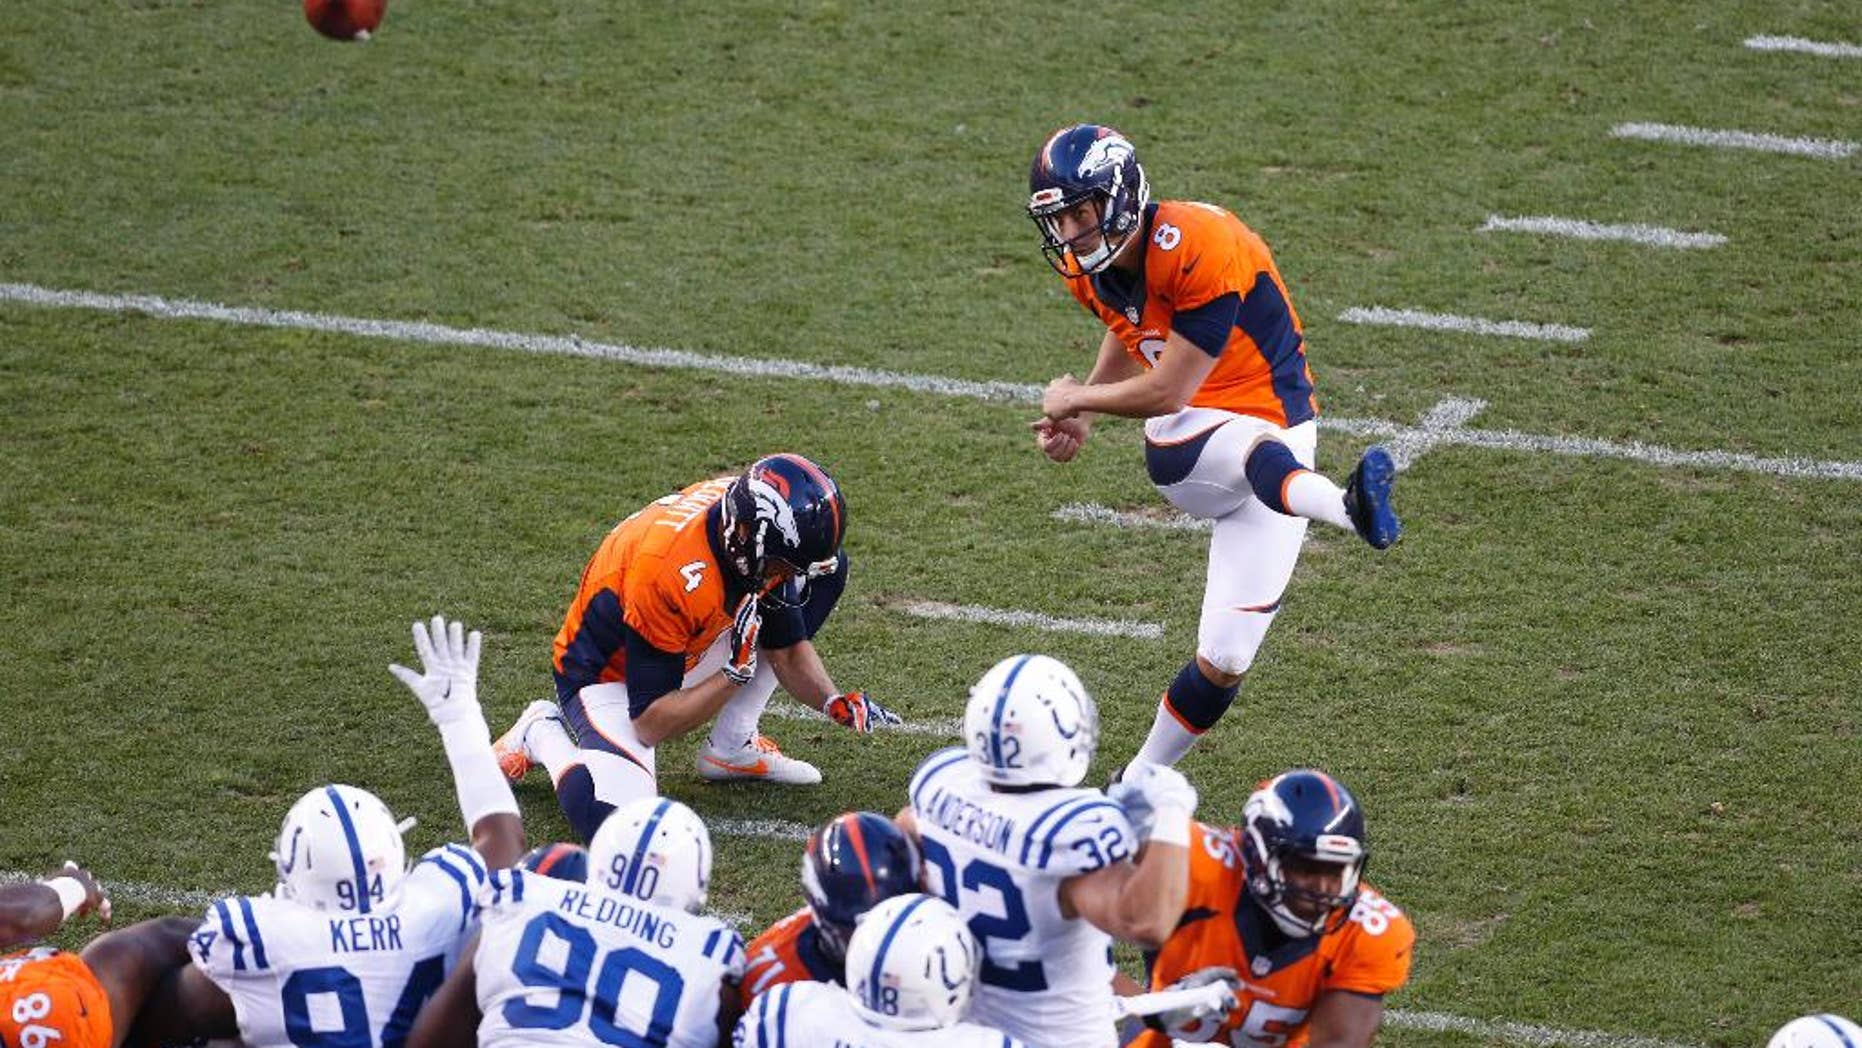 FILE - In this Sept. 7, 2014, file photo, Denver Broncos kicker Brandon McManus (8) kicks against the Indianapolis Colts during the first half of an NFL football game in Denver. McManus is making the most of his NFL tryout while Pro Bowler Matt Prater serves out his four-game suspension kicking field goals at a nearby high school. The Broncos traded a conditional 2015 seventh-round pick to the New York Giants for McManus last month after Prater was suspended for drinking. Prater has been in the NFL's drug program, which includes alcohol, since a DUI arrest in 2011.   (AP Photo/Brennan Linsley, File)